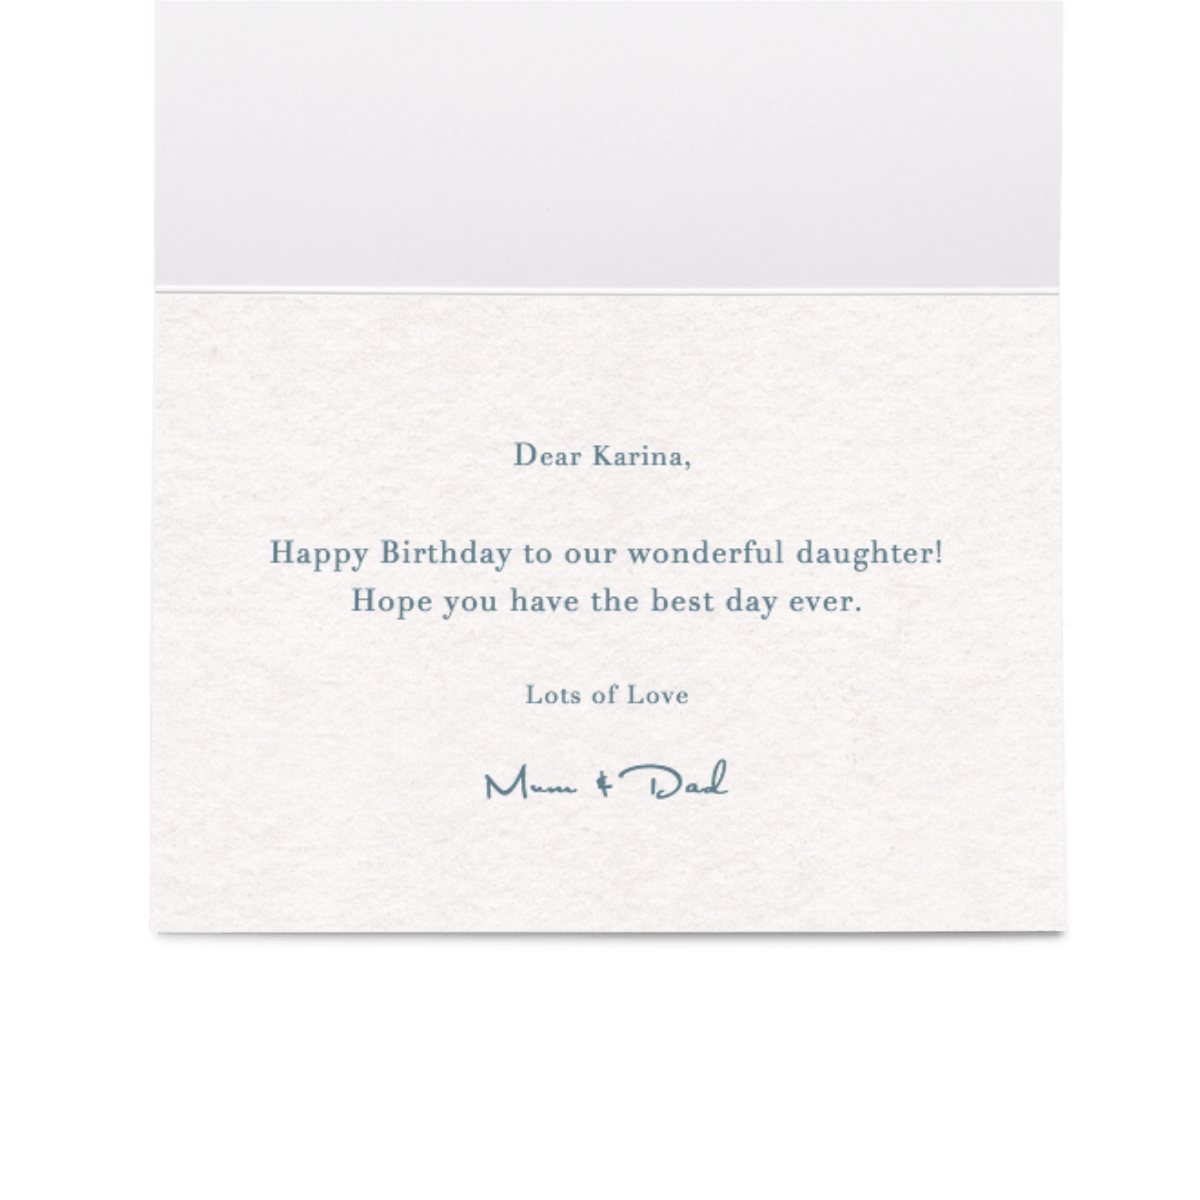 Https%3a%2f%2fwww.papier.com%2fproduct image%2f1171%2f20%2fhappy birthday floral 337 inside 1453909710.png?ixlib=rb 1.1